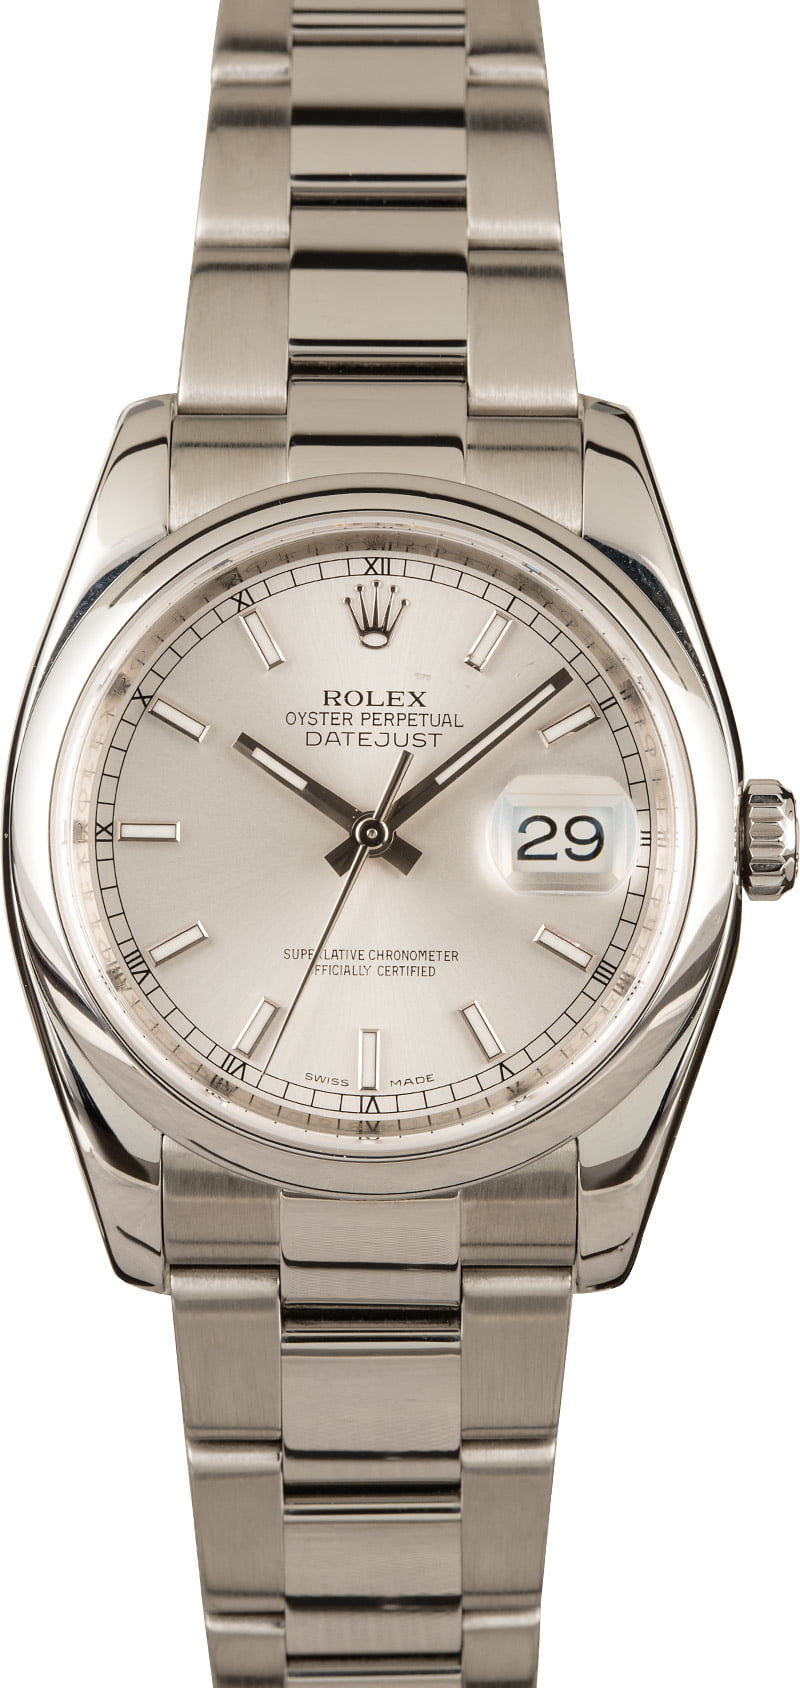 Rolex Datejust to celebrate your recent grad